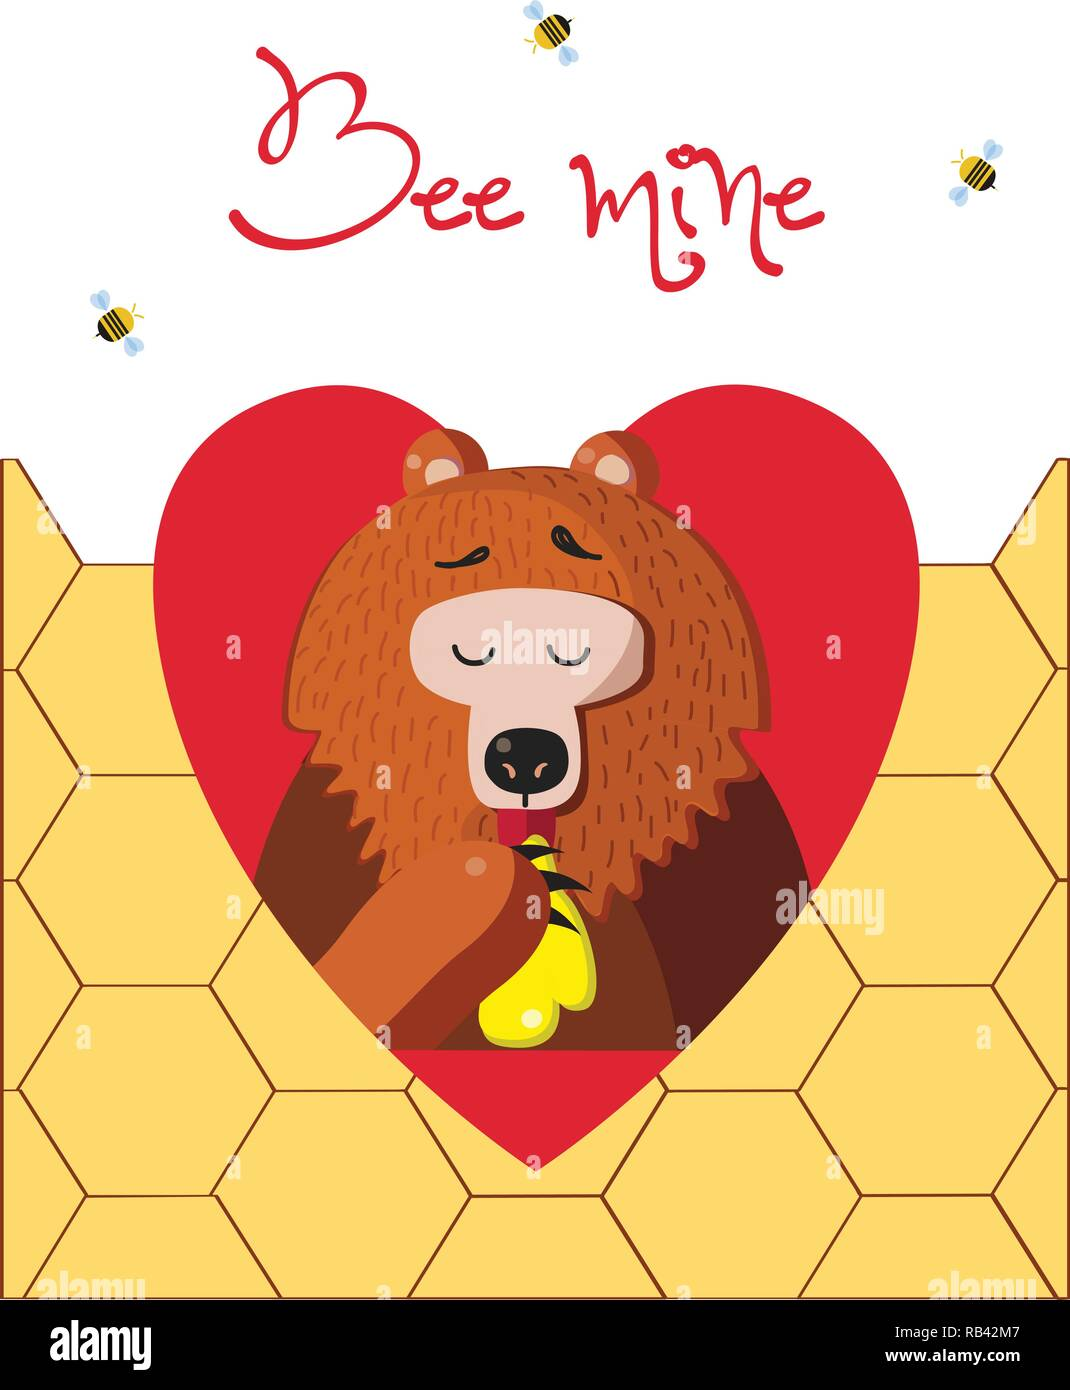 Bee mine valentine greeting card of cute cartoon bear vector illustration character eating honey inside of red heart and bees around on honeycomb back - Stock Vector